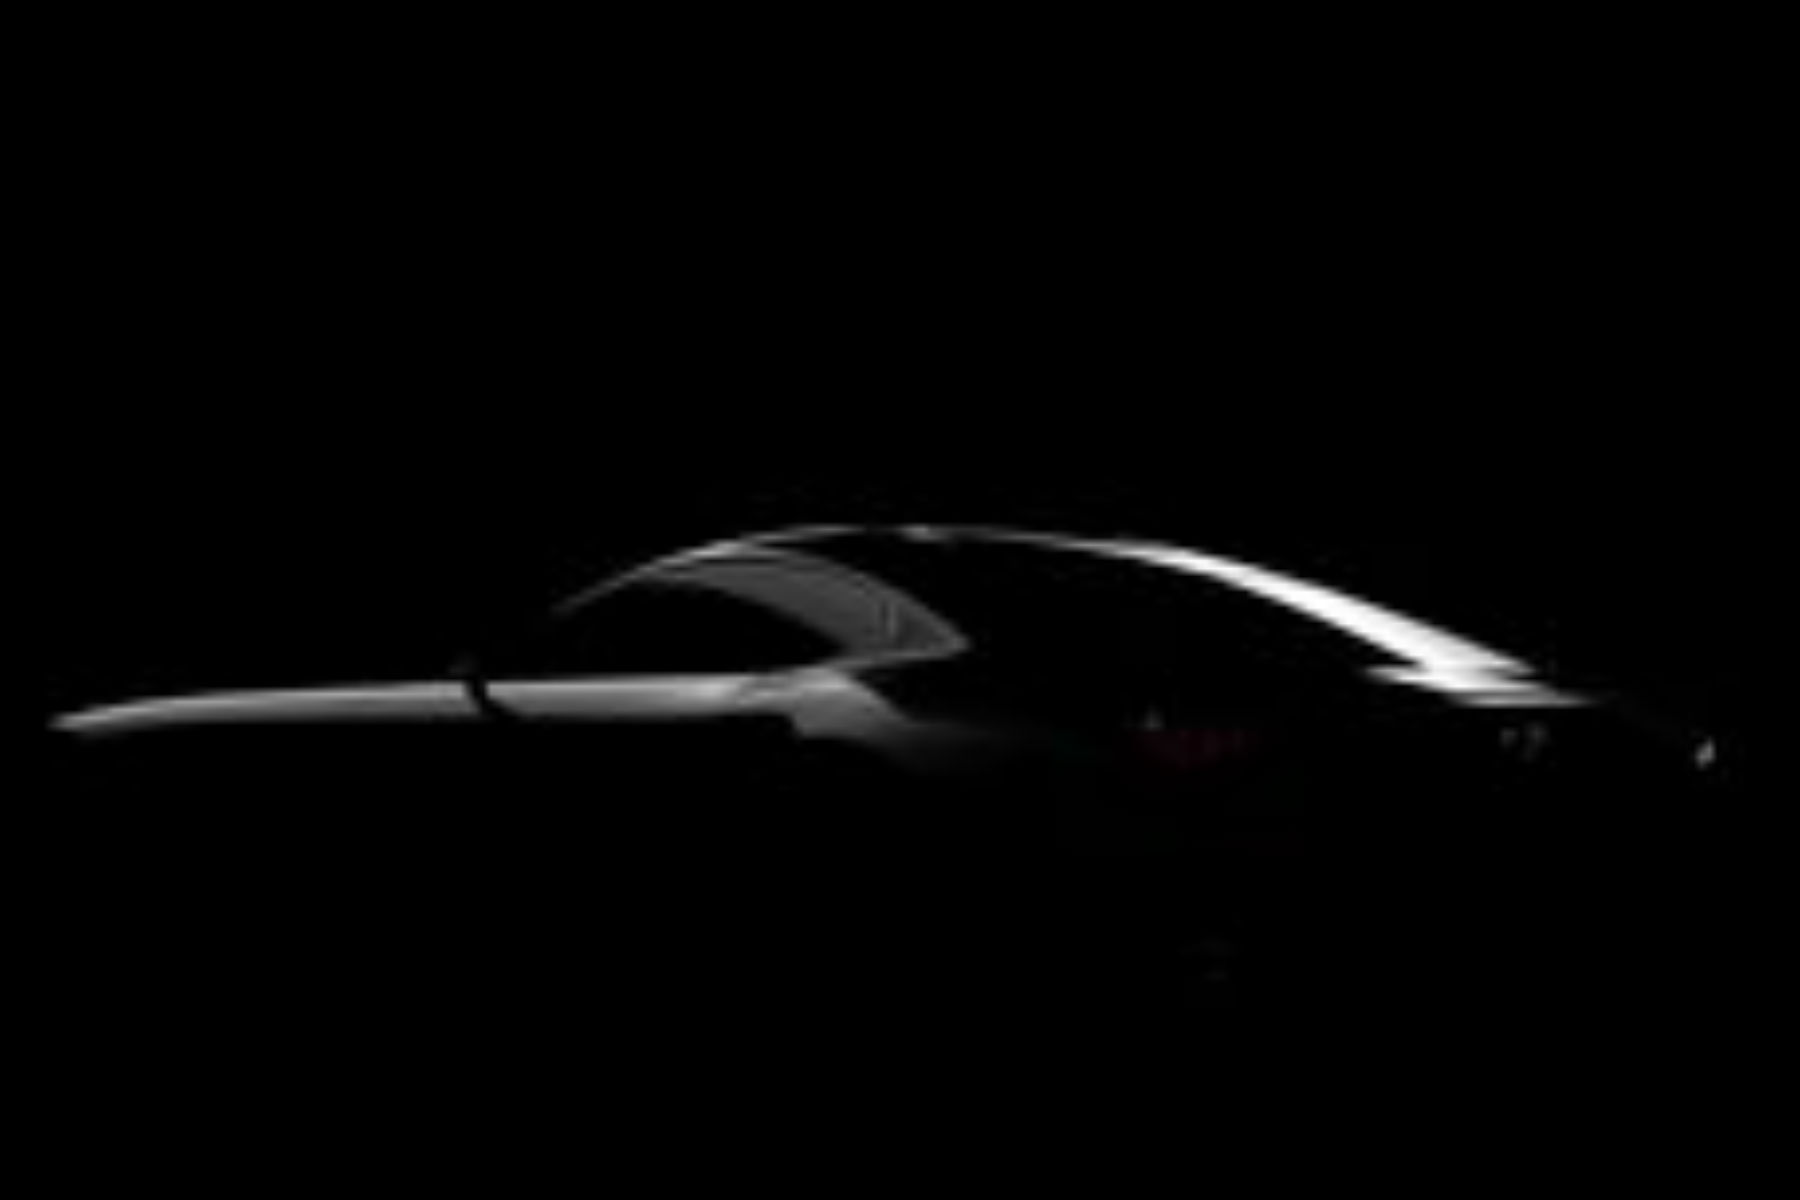 Mazda teases new concept sports car ahead of Tokyo debut